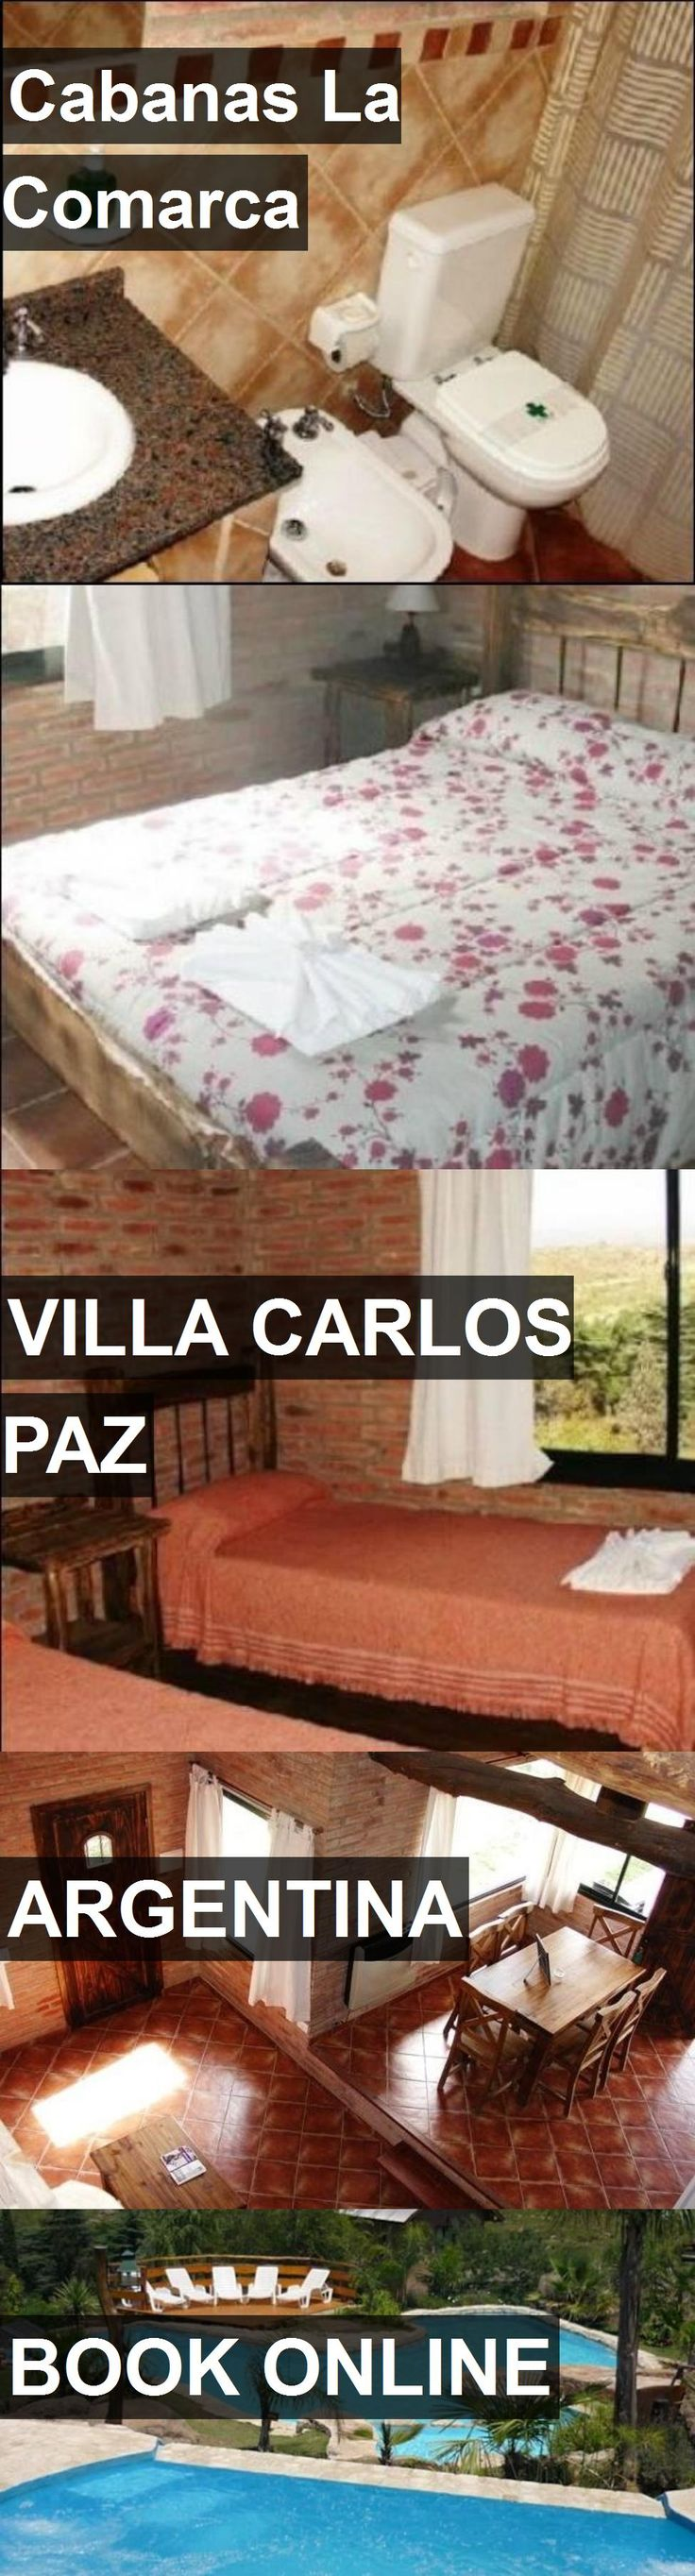 Hotel Cabanas La Comarca in Villa Carlos Paz, Argentina. For more information, photos, reviews and best prices please follow the link. #Argentina #VillaCarlosPaz #travel #vacation #hotel